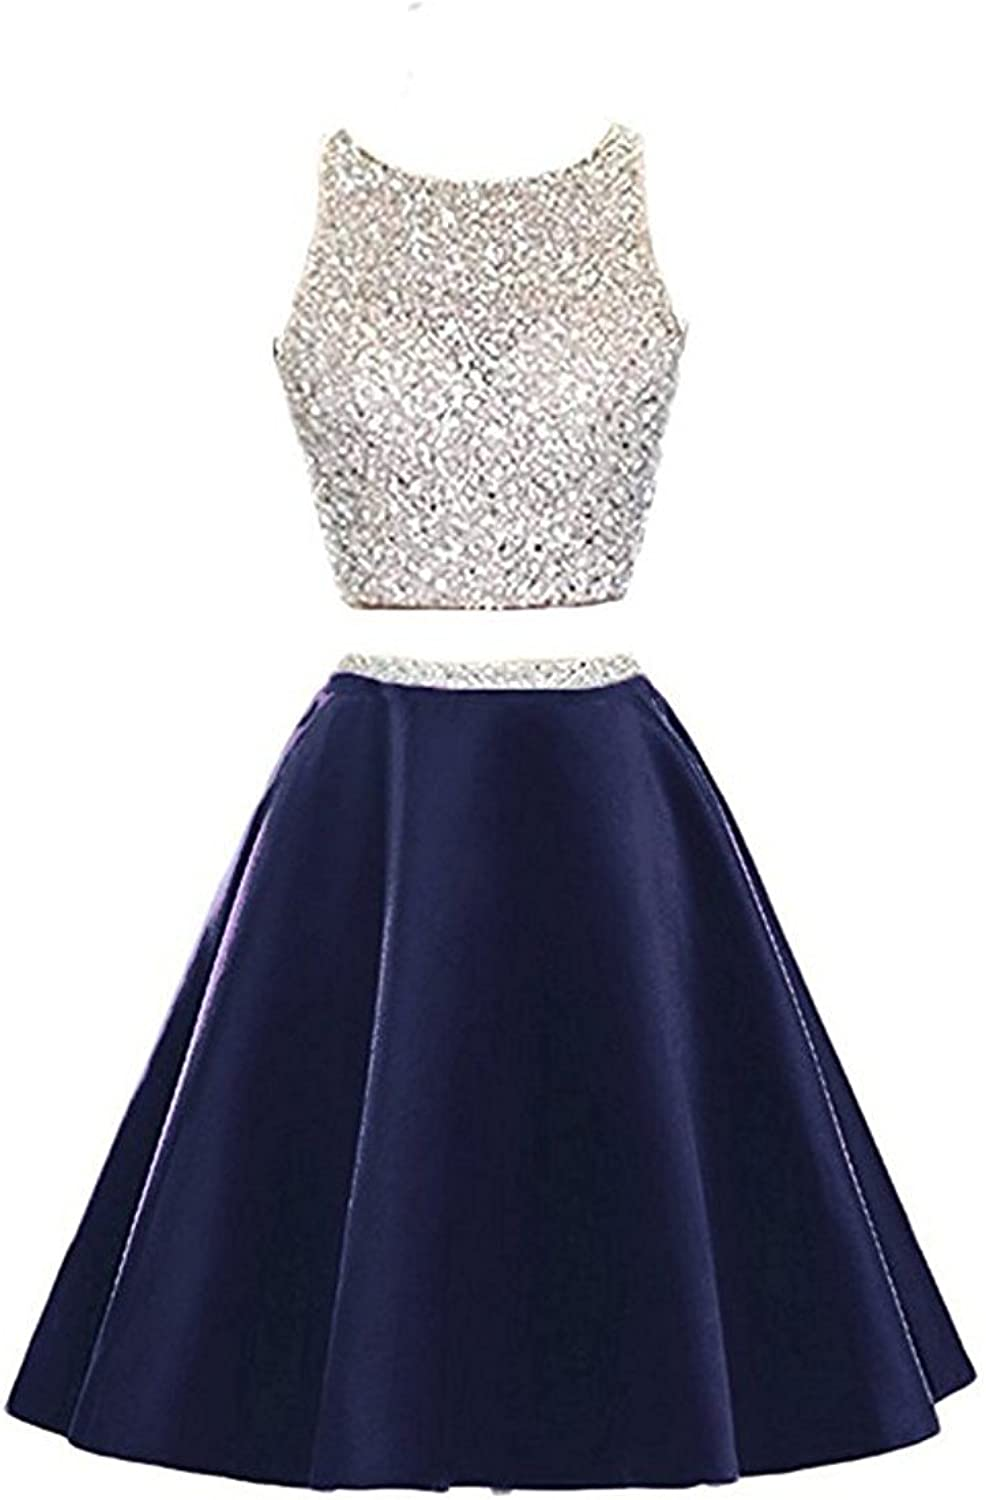 Sound of blossoming Two Pieces Homecoming Dress Beaded Short Prom Dress